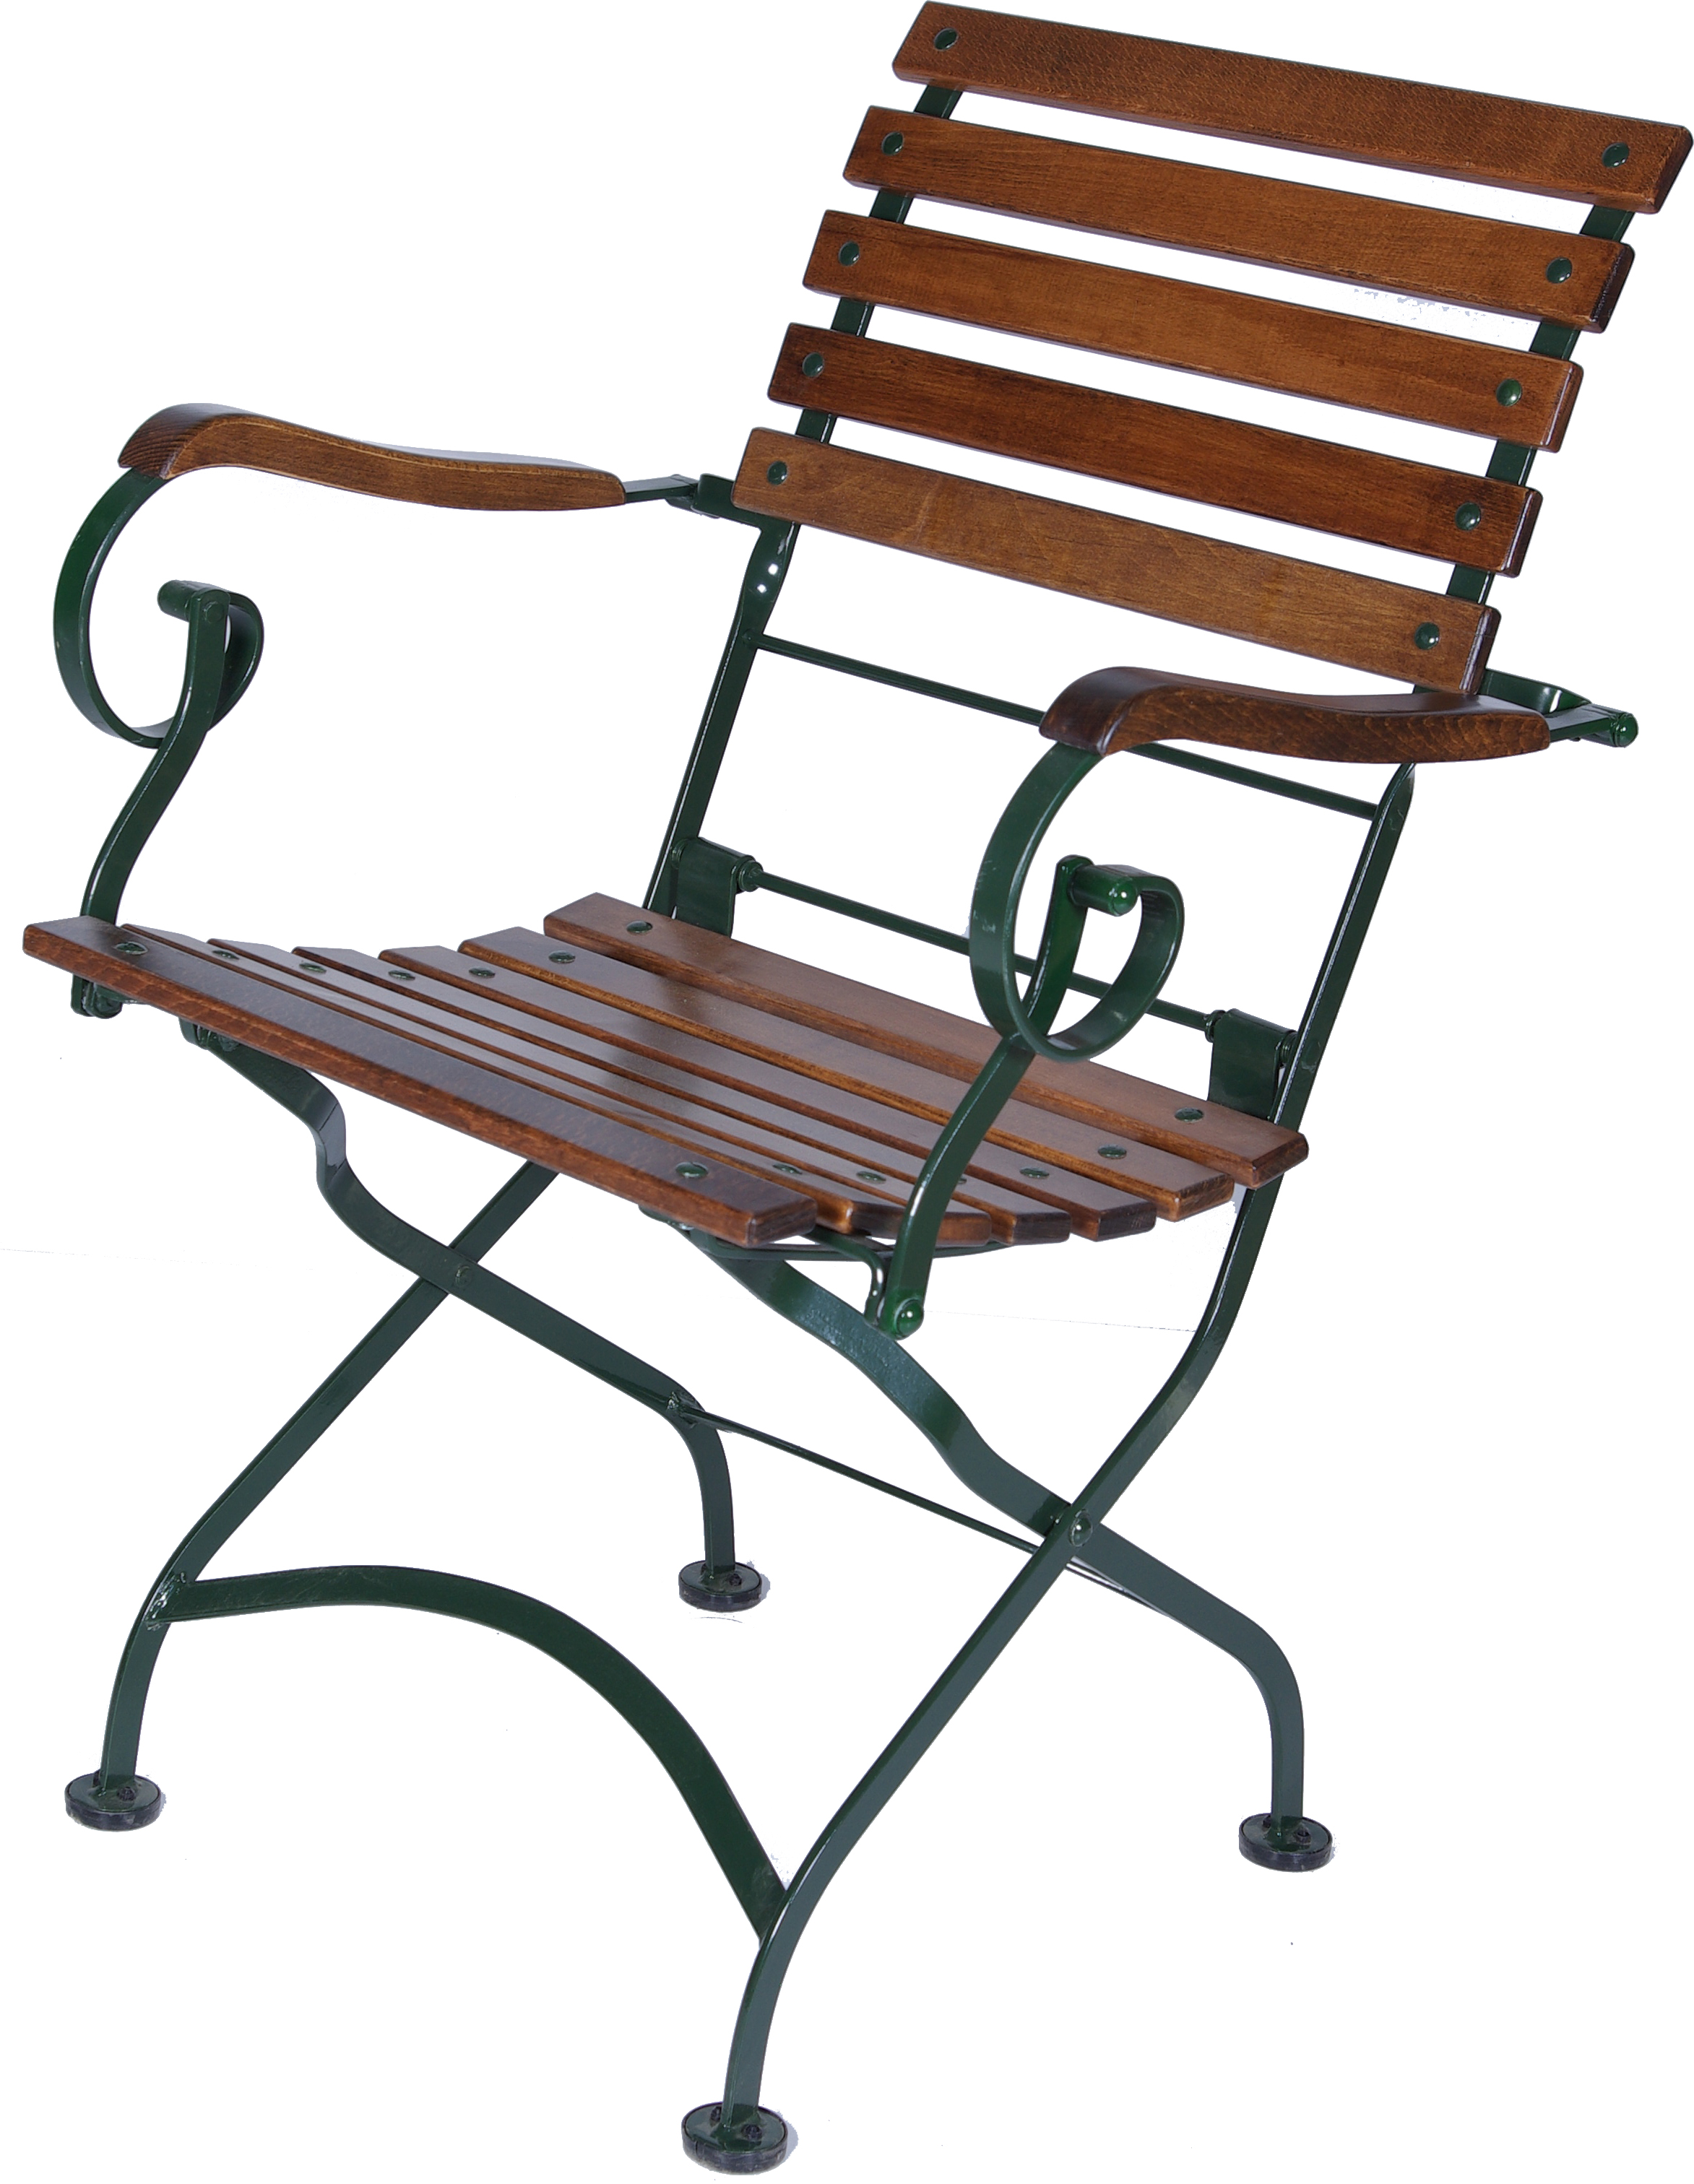 chair design iron vintage revolving kizze furniture products wrought furnitures